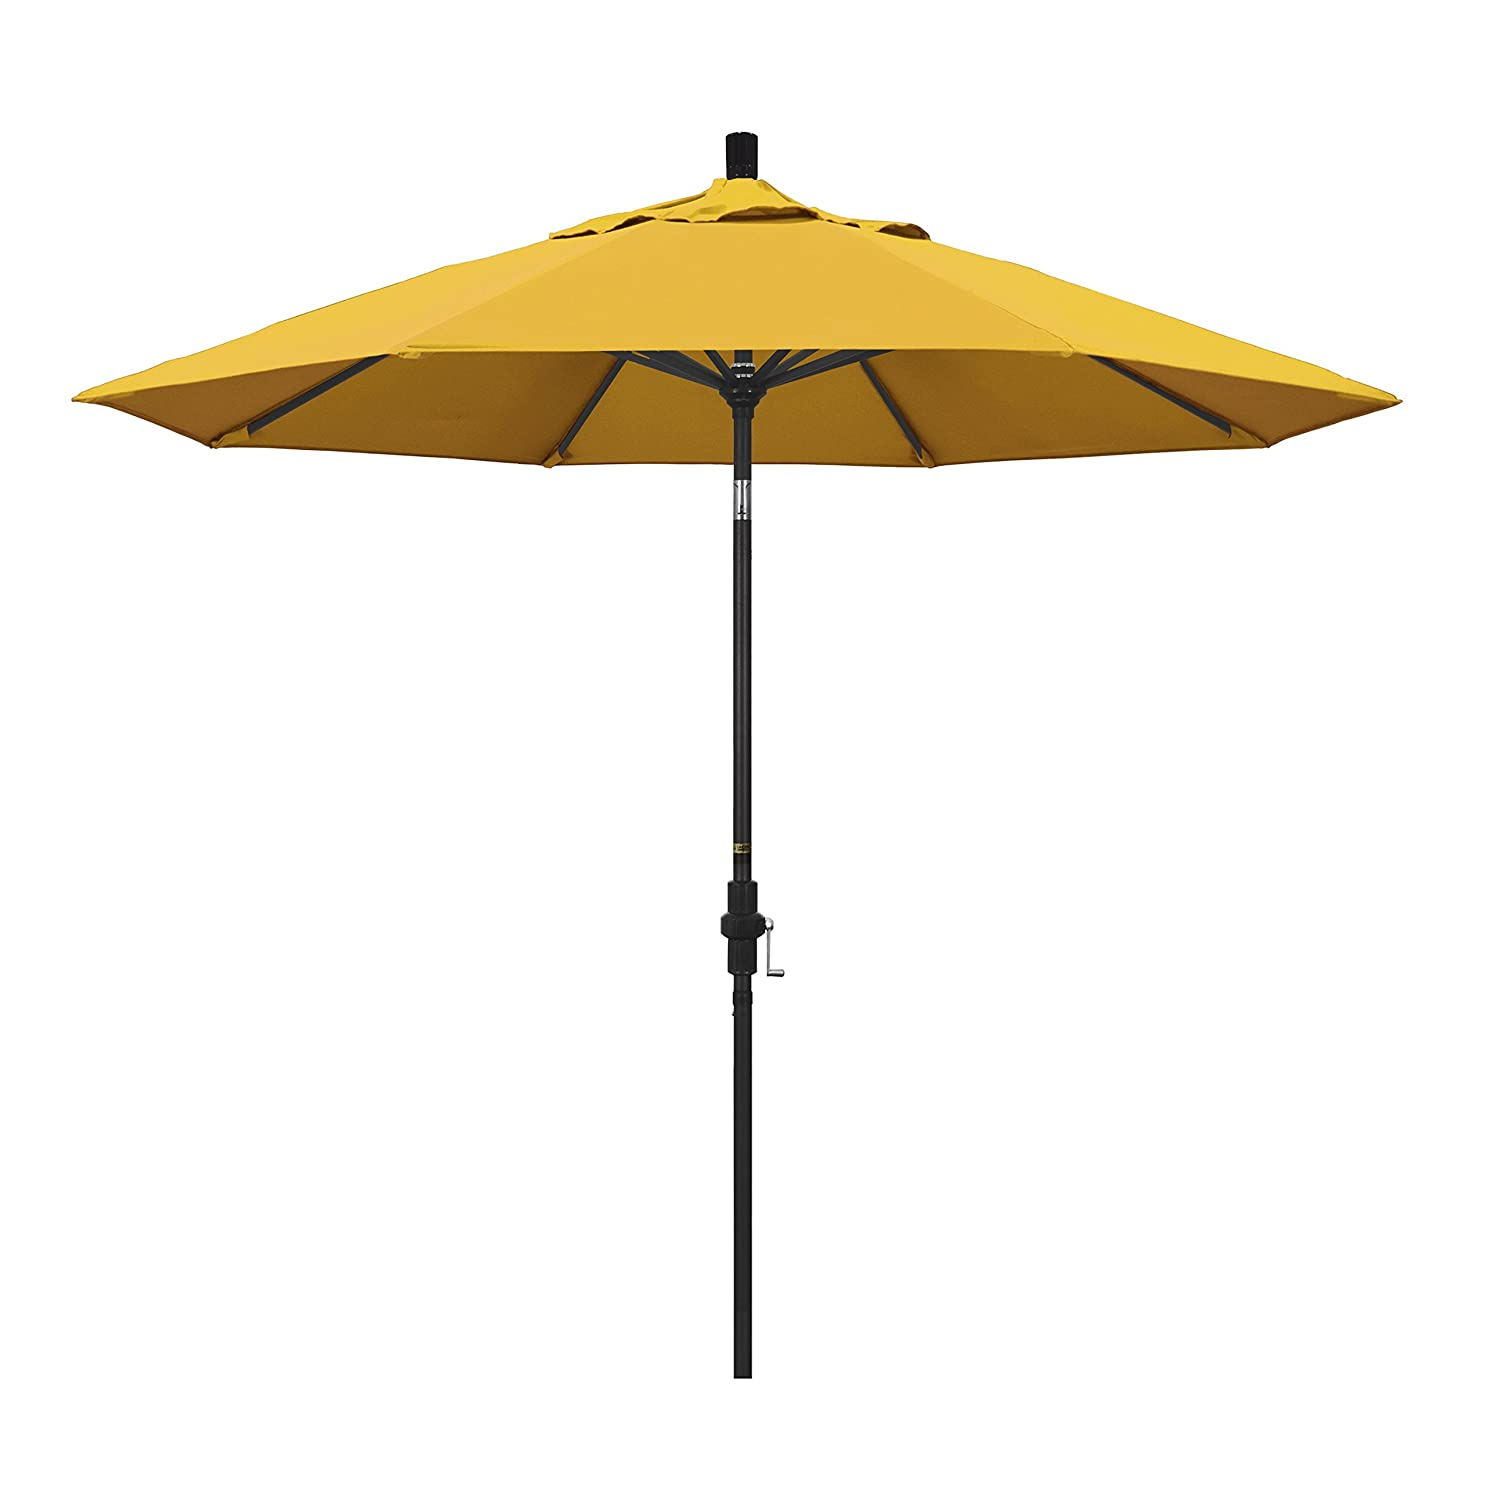 California Umbrella 9 Round Aluminum Market Umbrella, Crank Lift, Collar Tilt, Black Pole, Pacifica Yellow